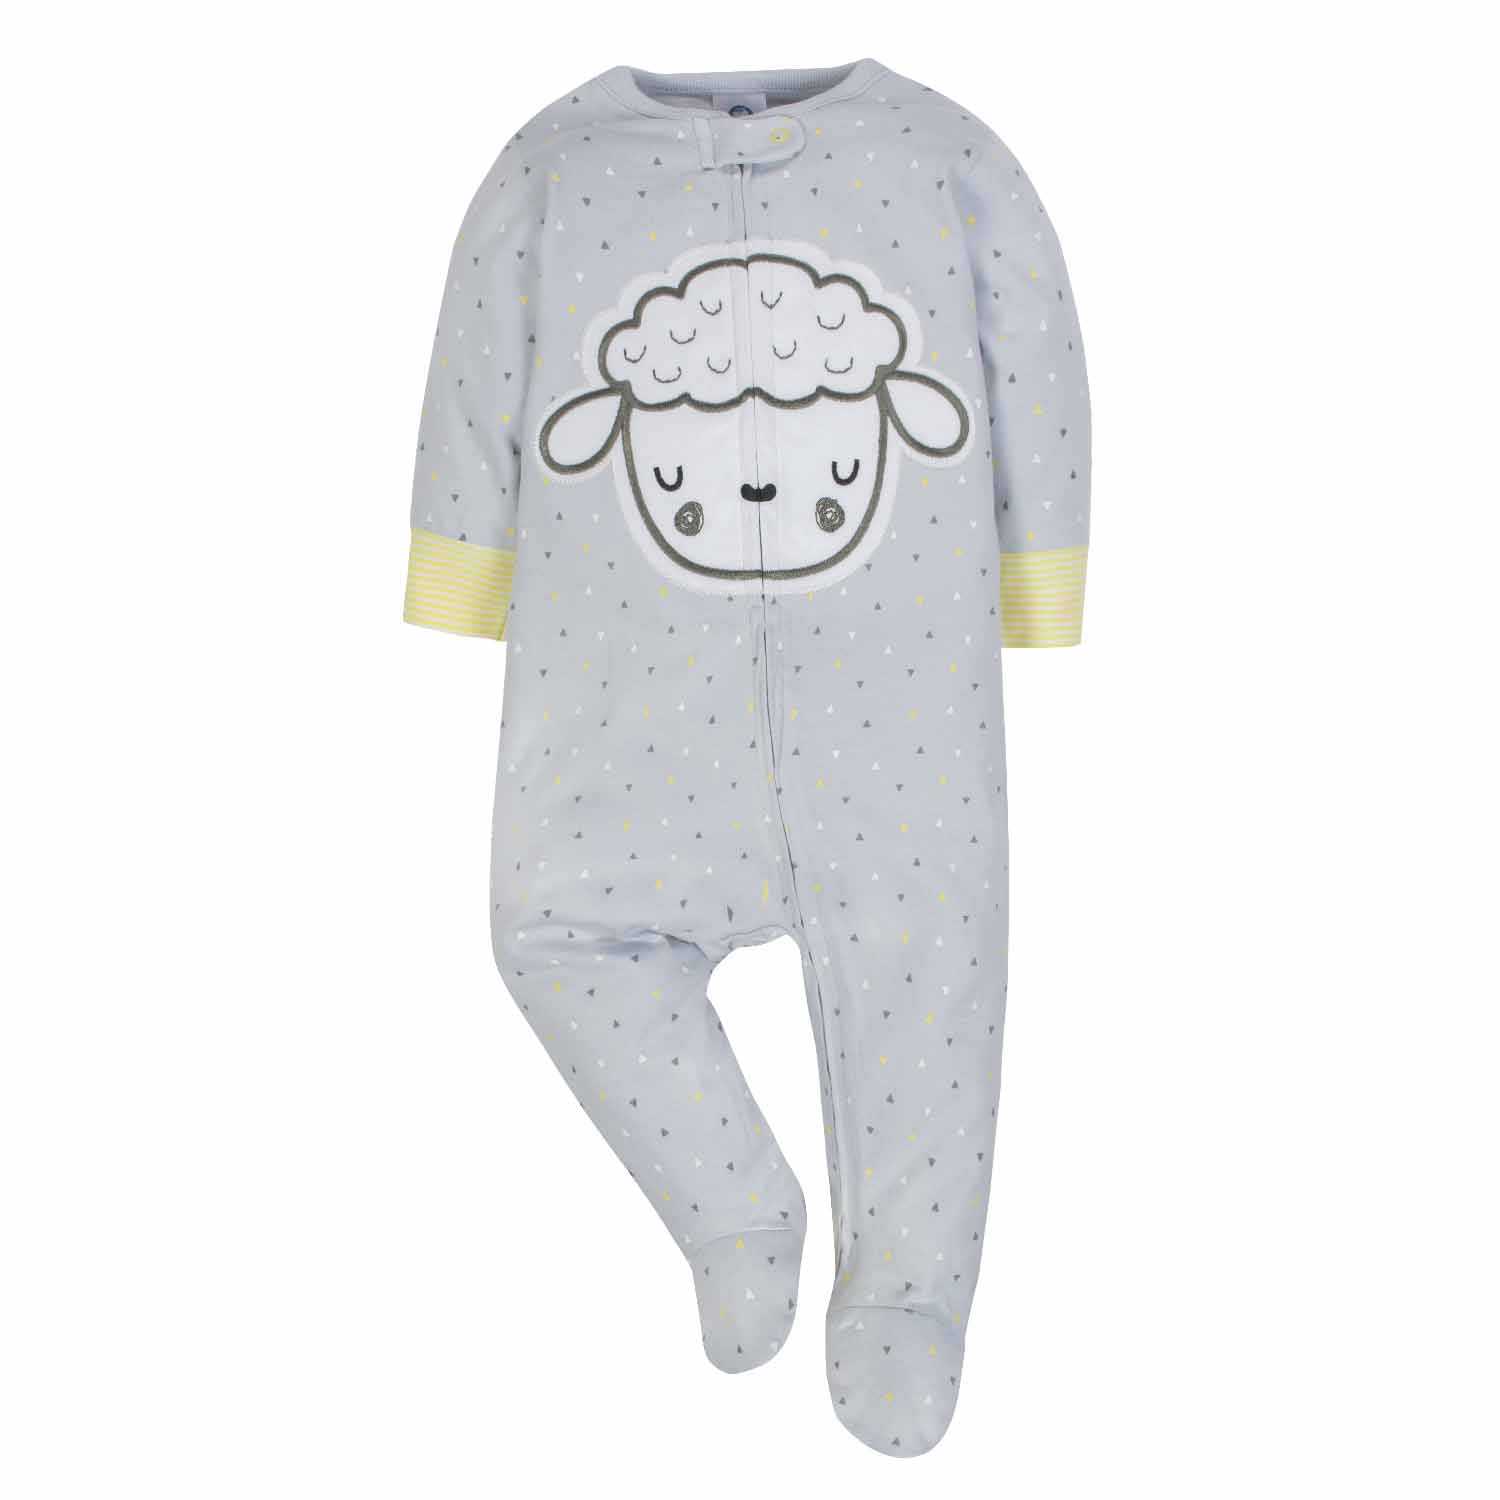 3-Pack Neutral Sheep Sleep N' Play - Limited Edition